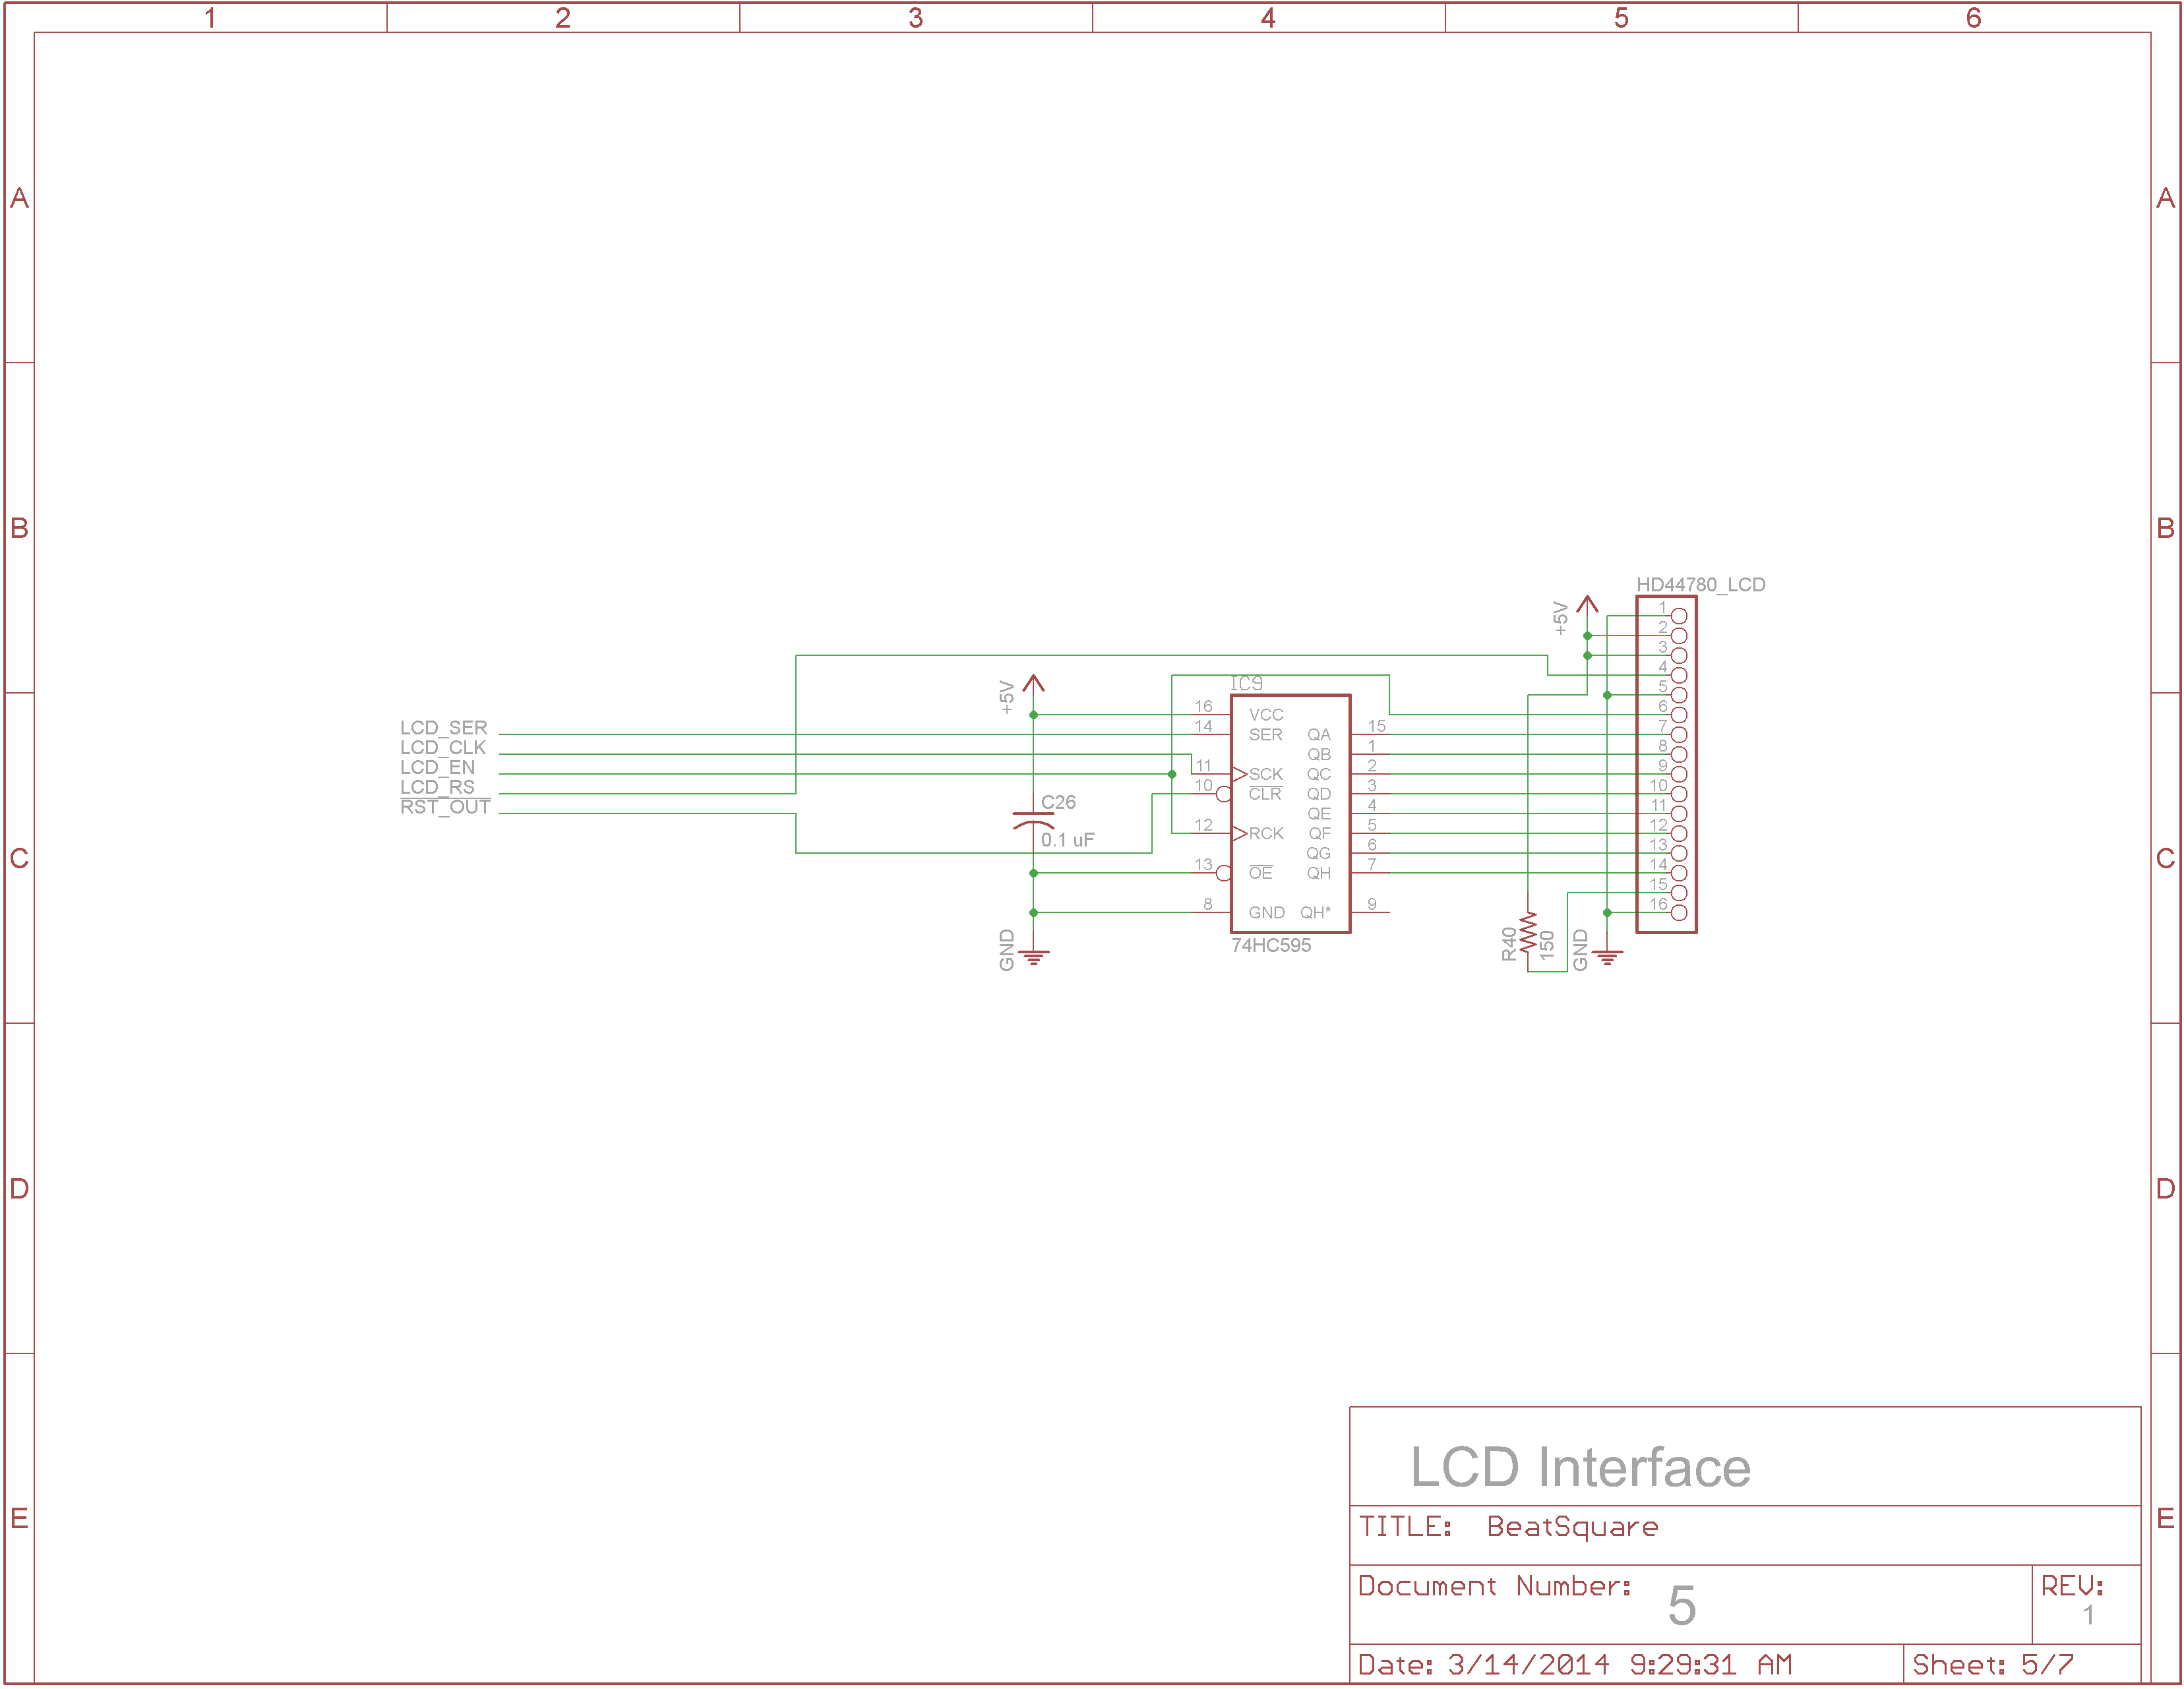 Lab Notebook Kevin Meyer Debounce Circuit Of Course Mitigates This Characteristic The Submitted Pcb Layout